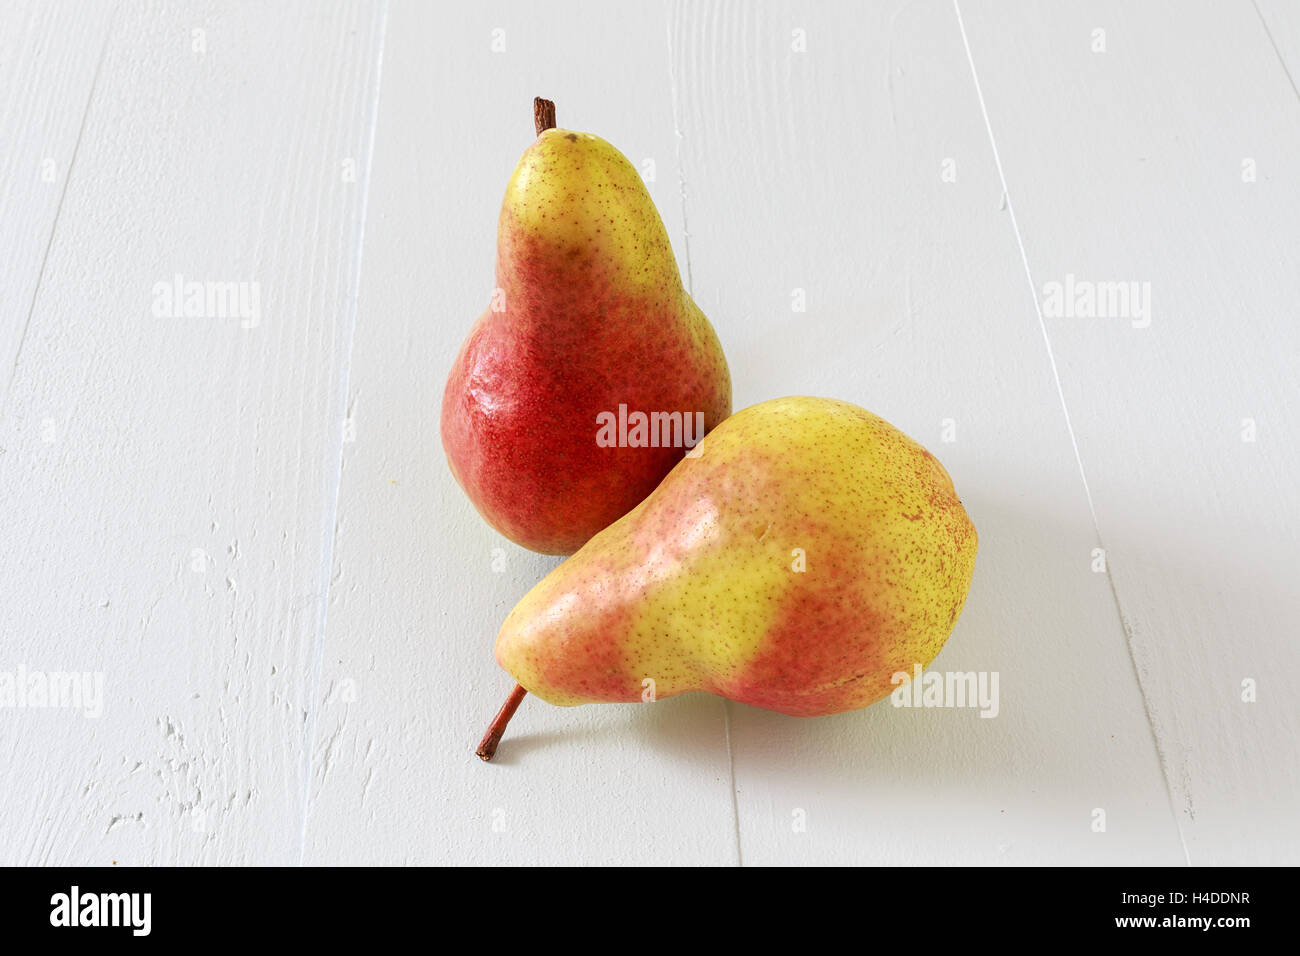 Bartlett pears on a wooden table. - Stock Image